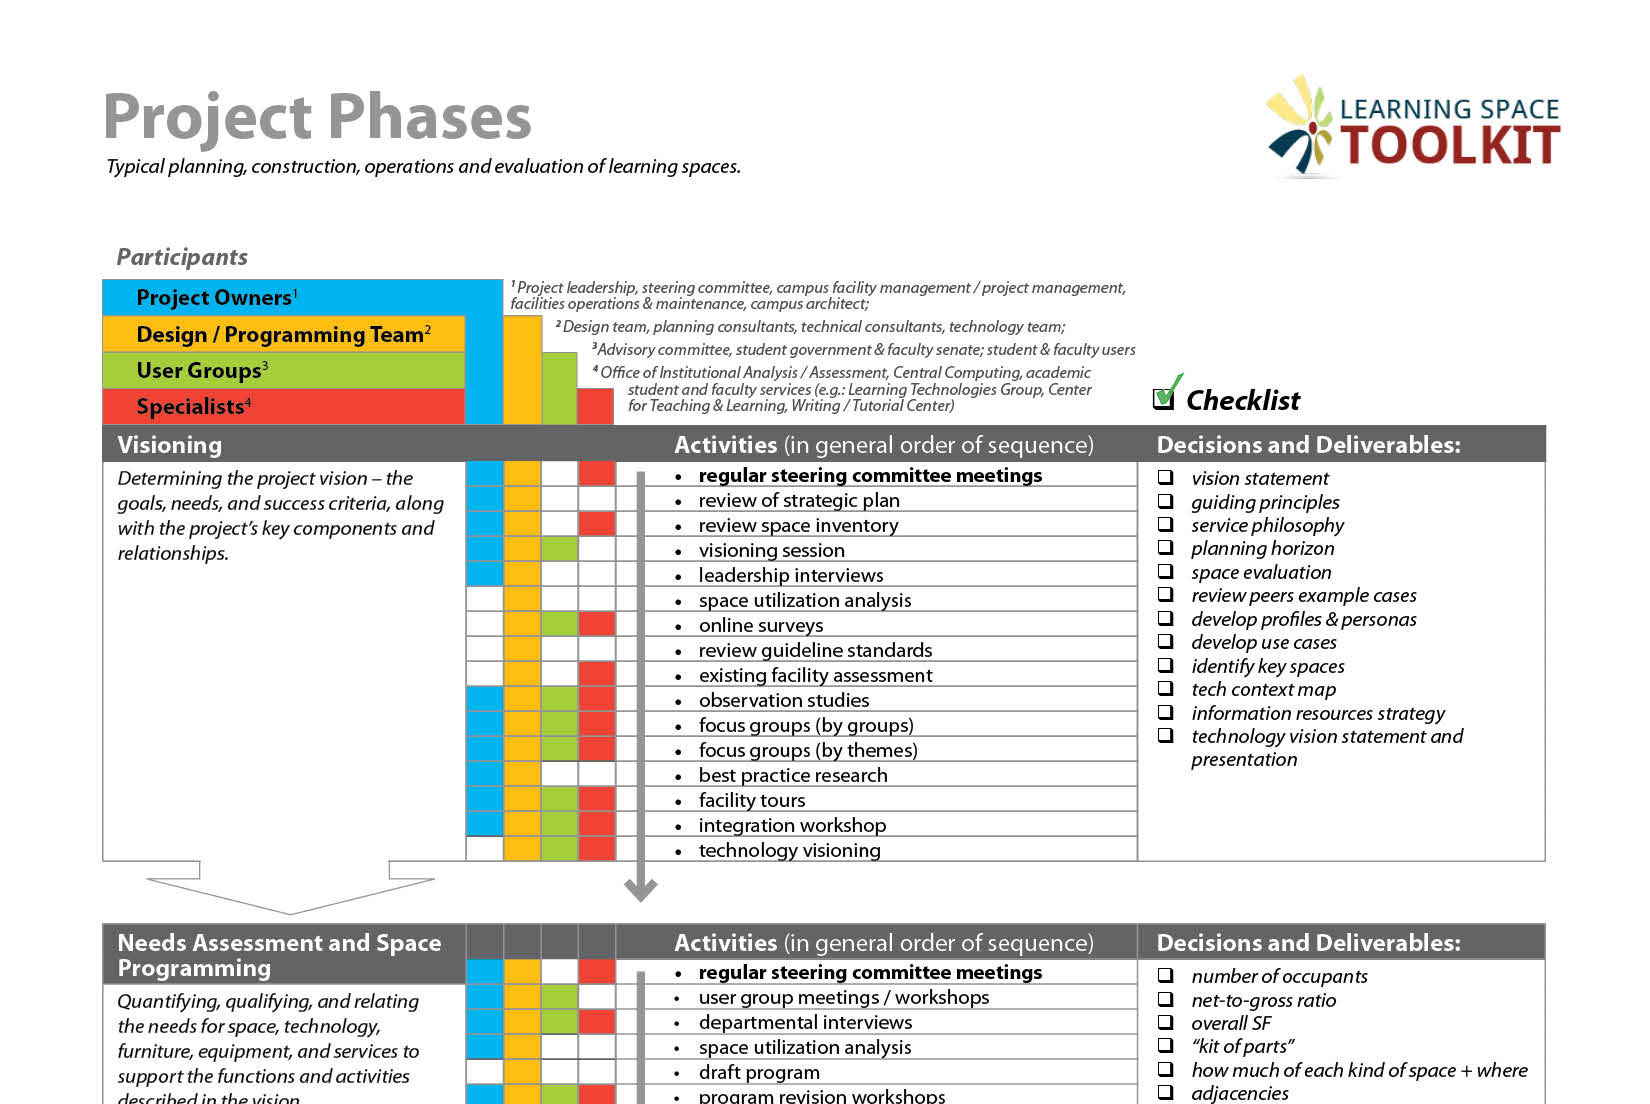 Project Phases Learning Space Toolkit - Research roadmap template